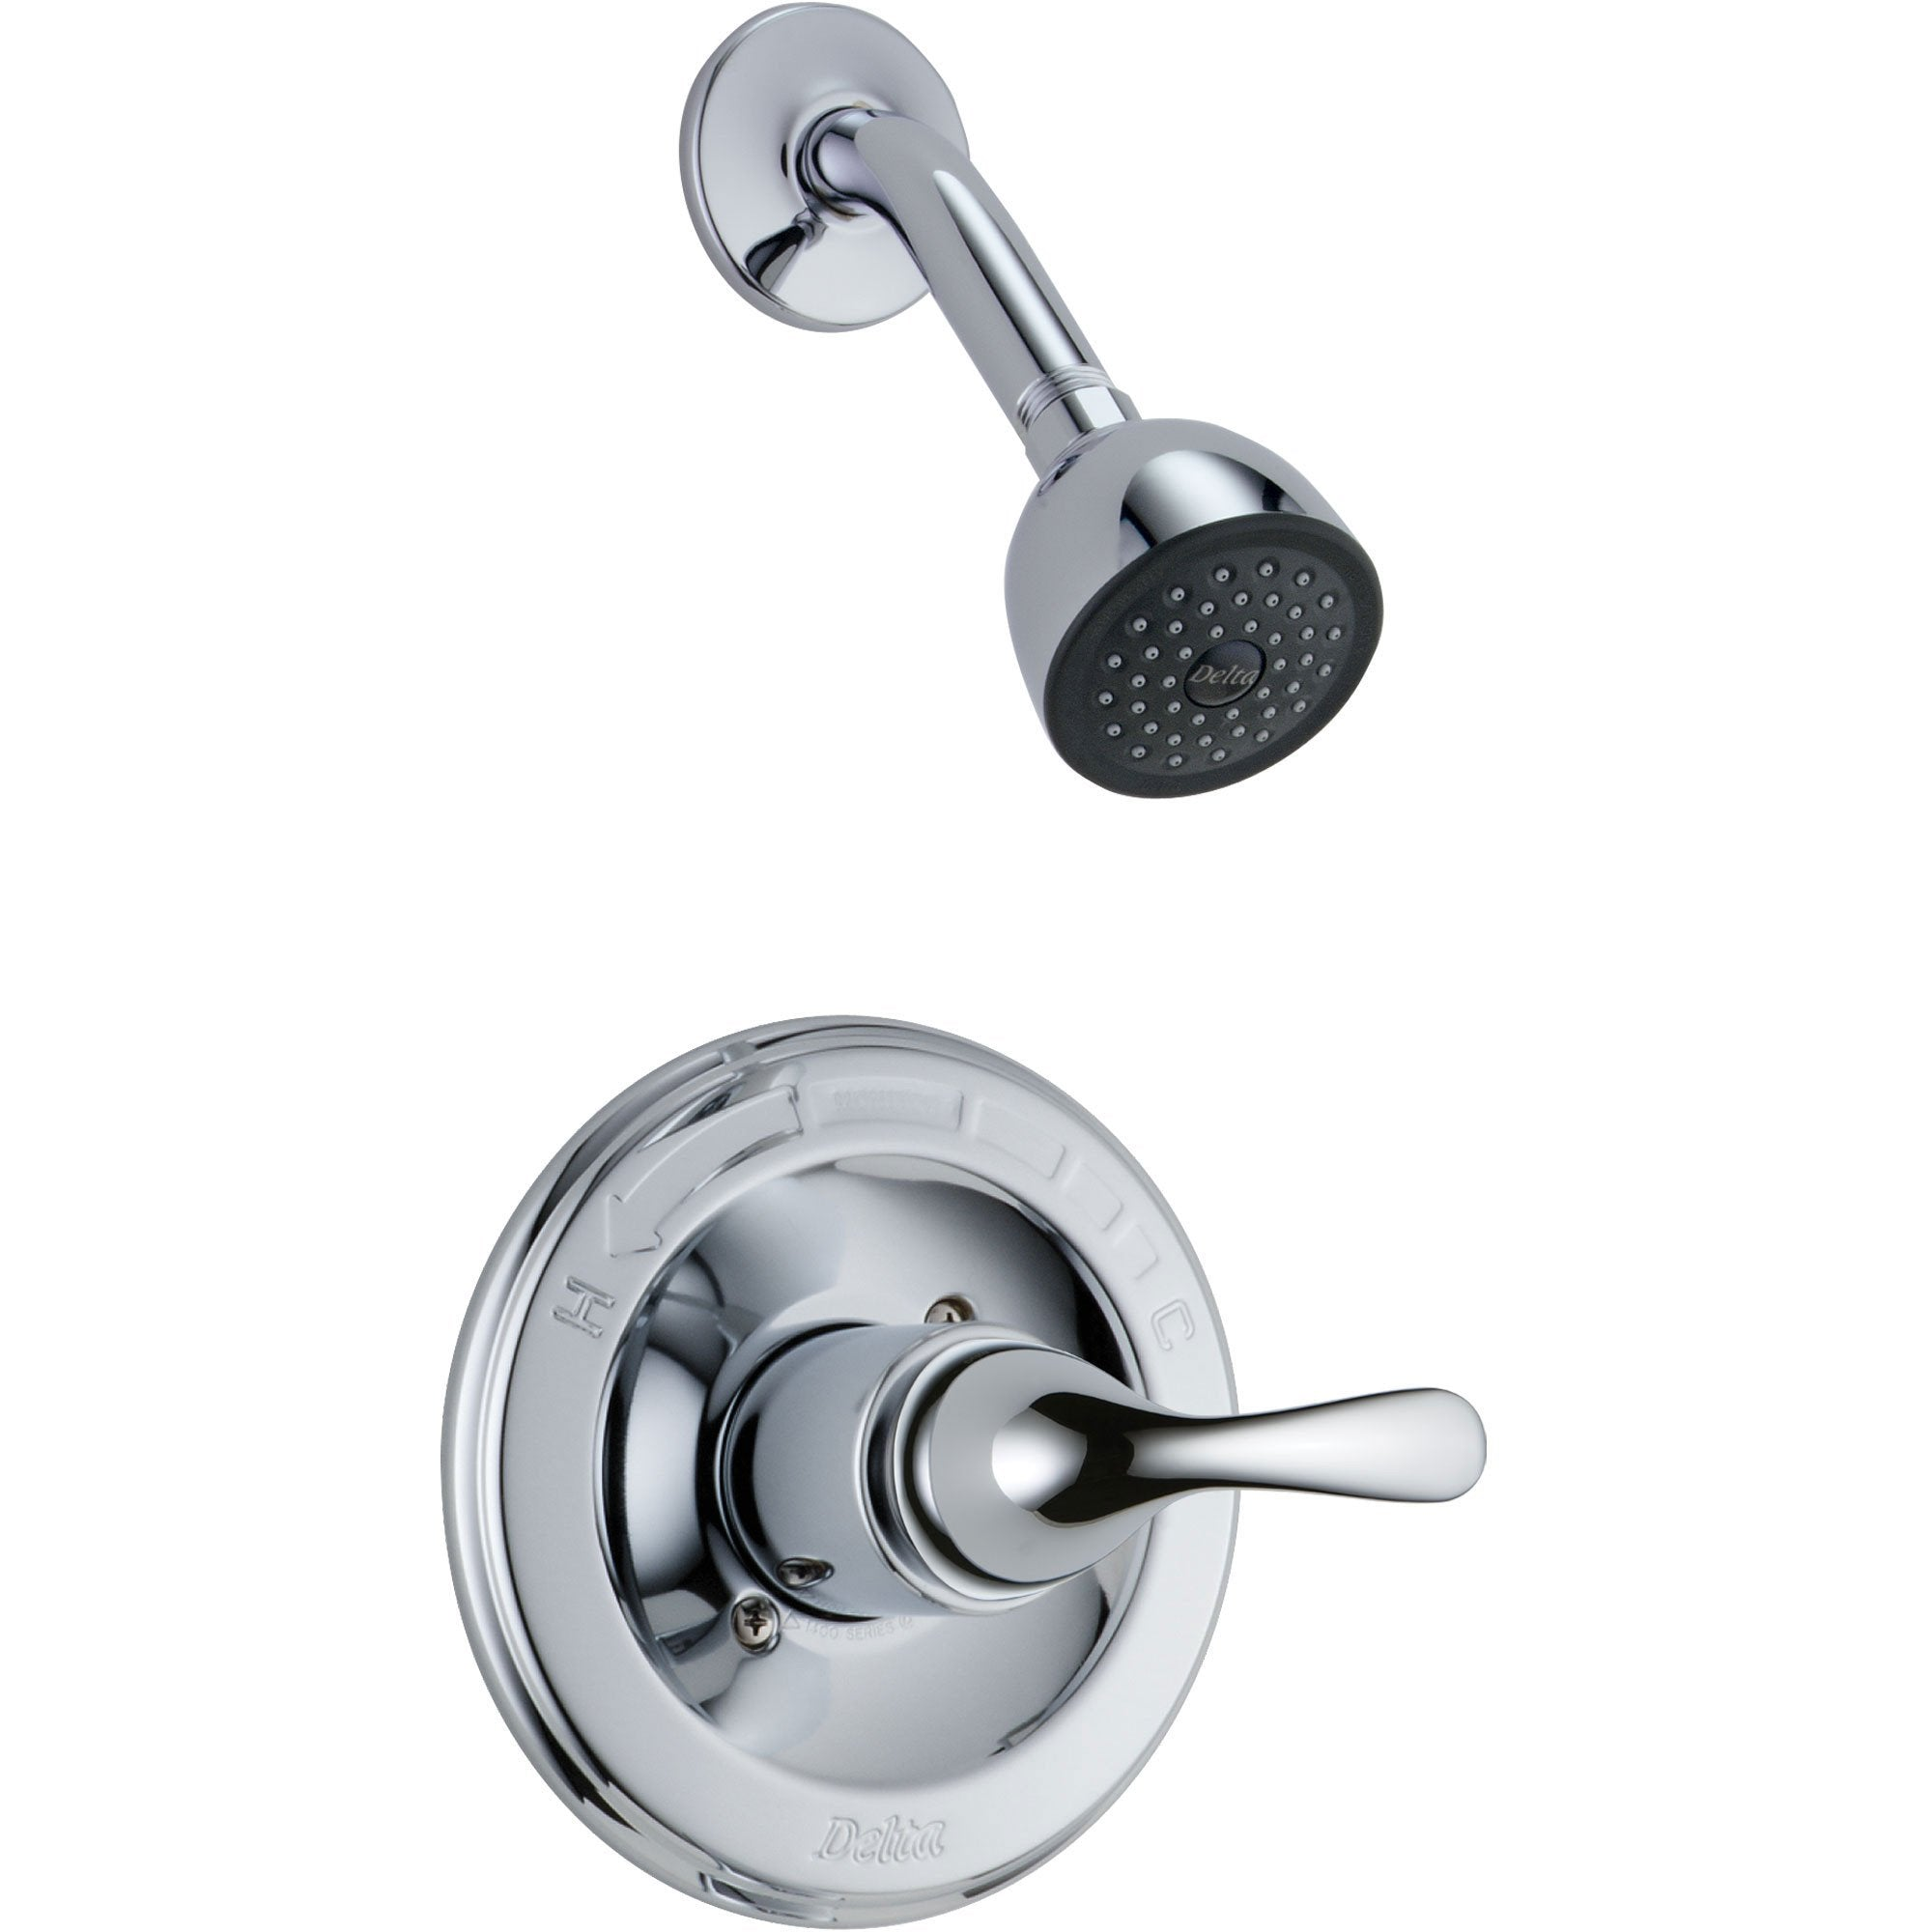 Delta Classic Chrome Single Handle Shower Only Faucet Includes Valve D555V